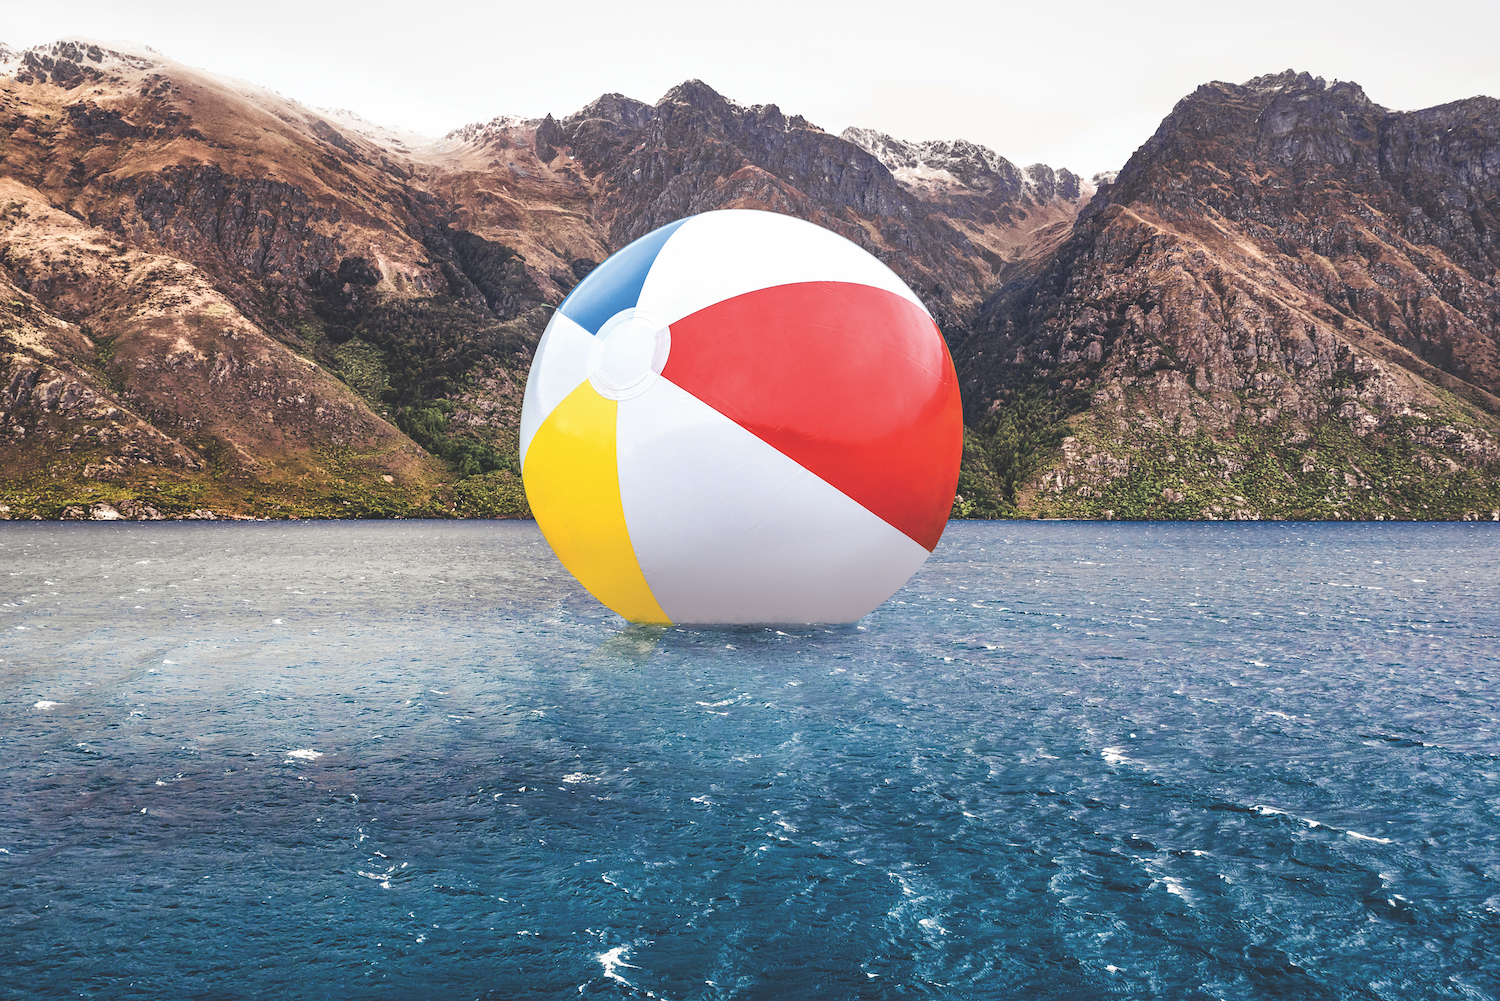 CMYK_beachball copy.jpg